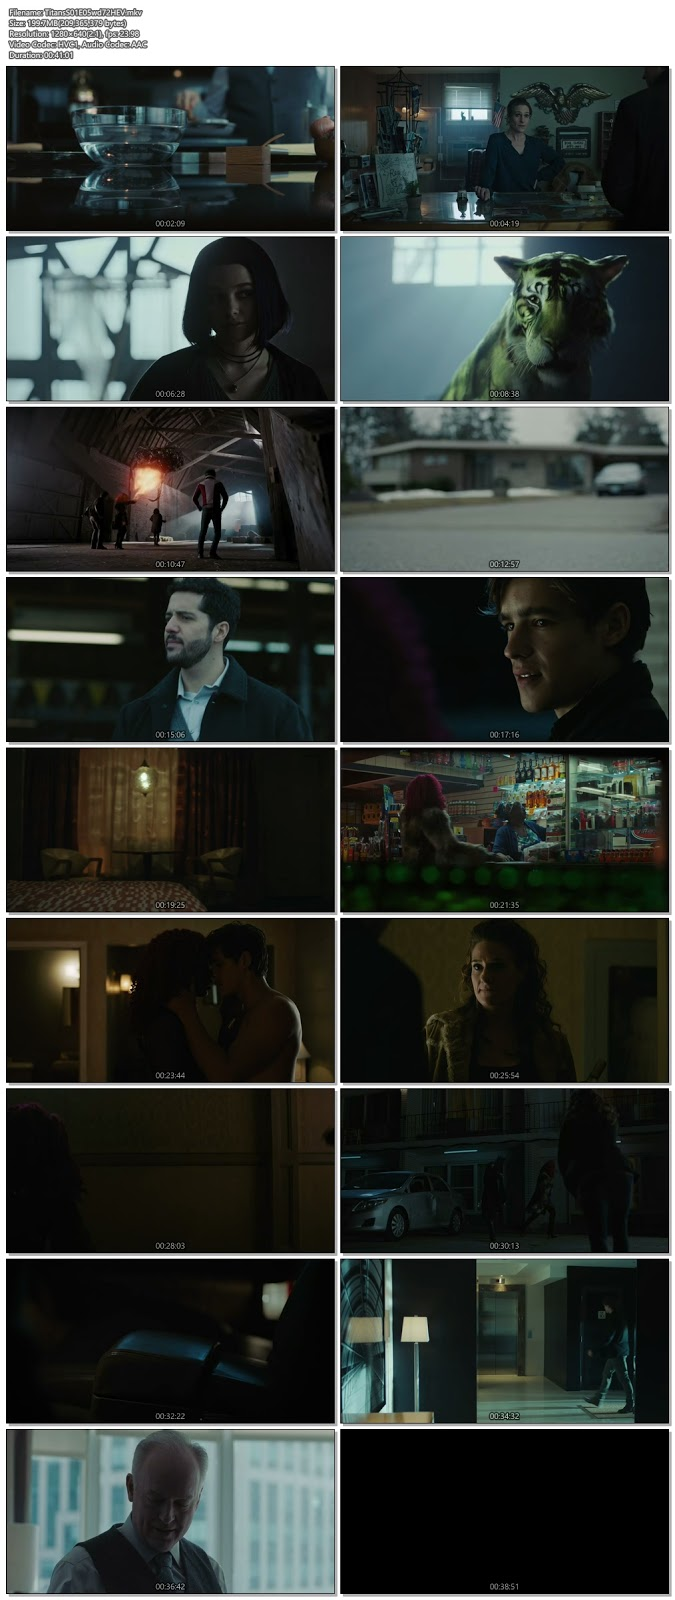 Titans S01 Episode 05 720p HDTV 200MB ESub x265 HEVC , hollwood tv series Titans S01 Episode 01 720p hdtv tv show hevc x265 hdrip 200mb 250mb free download or watch online at world4ufree.vip